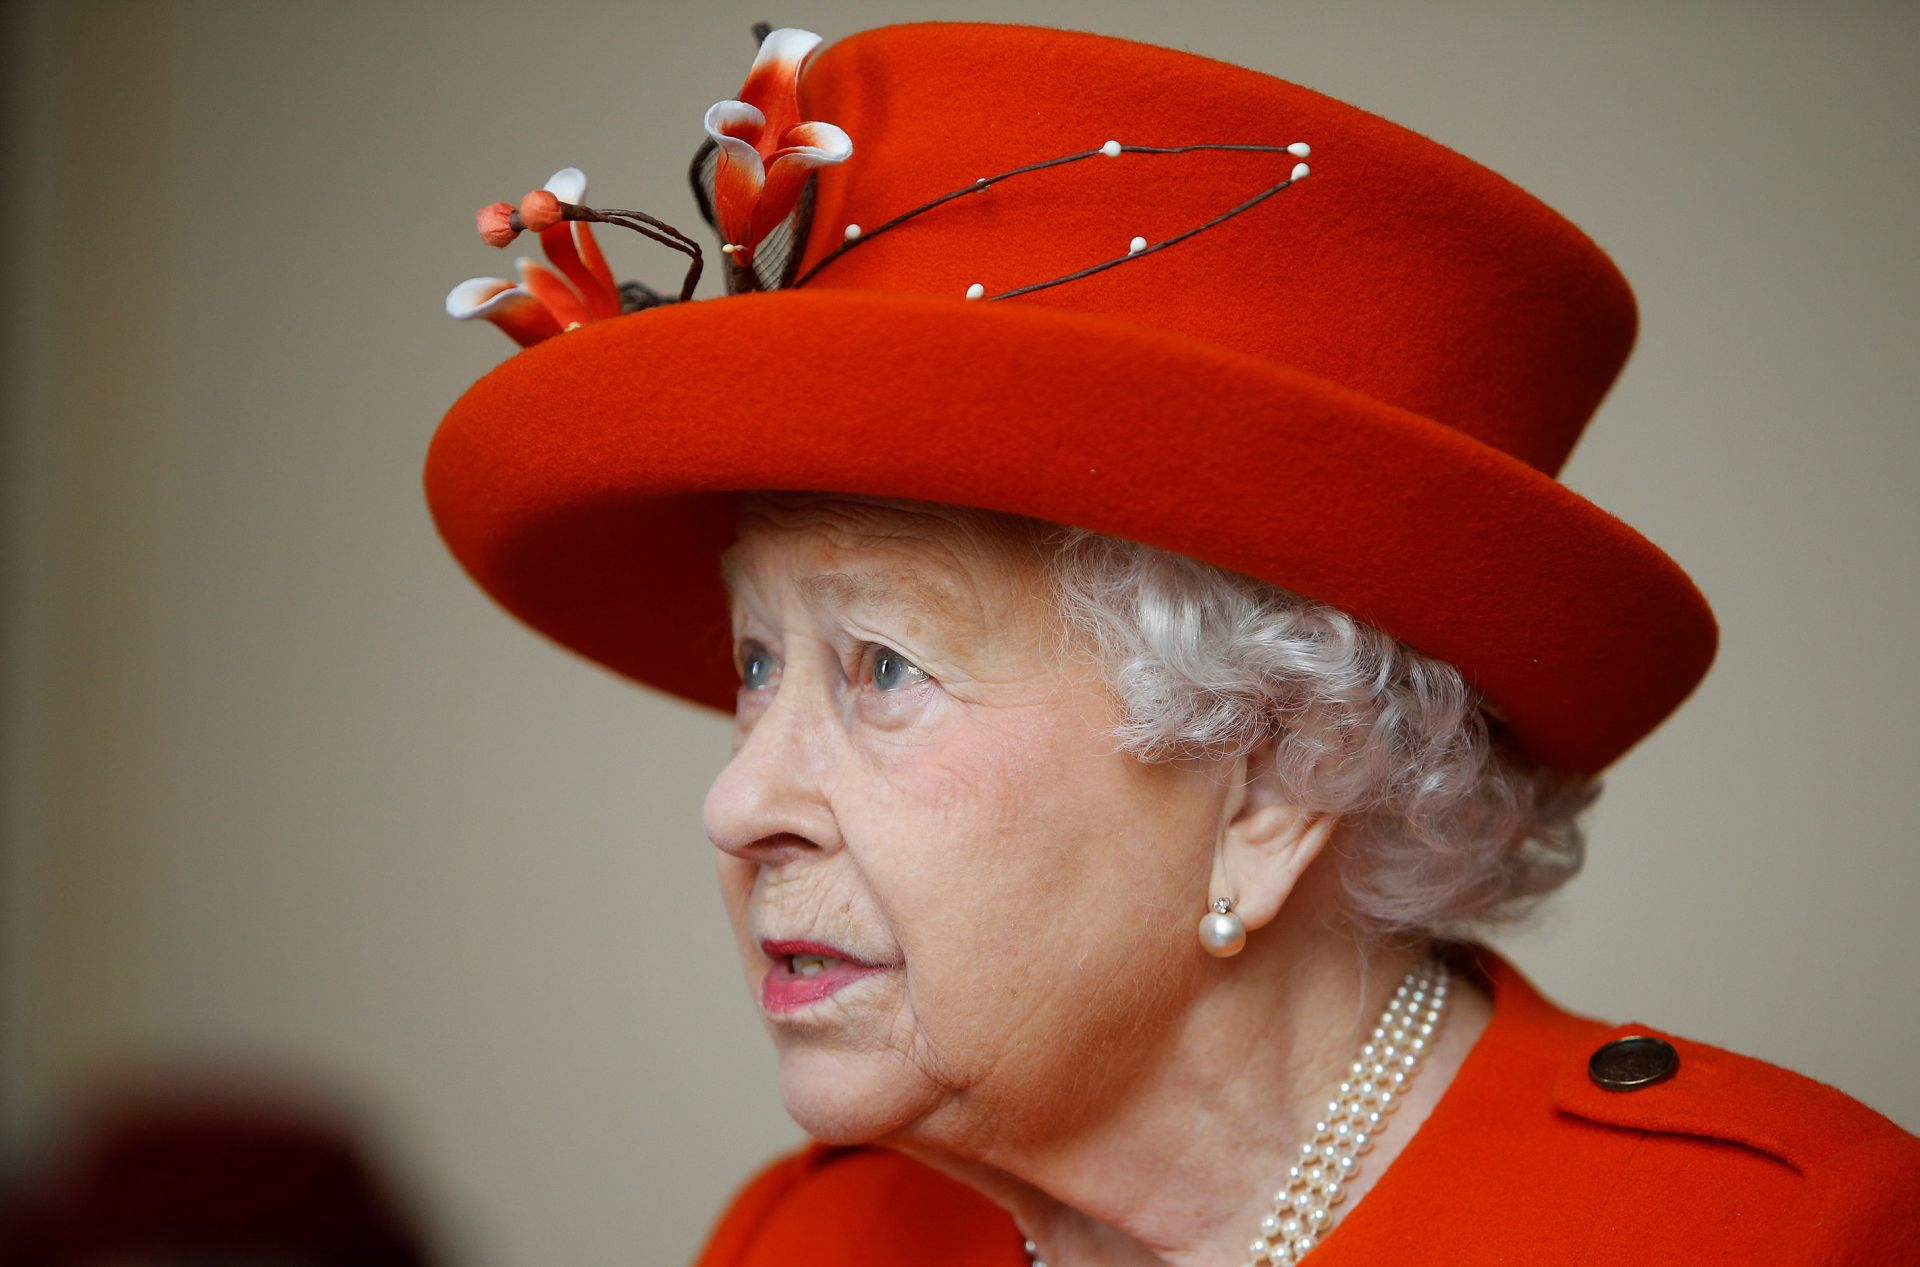 Britain's Queen Elizabeth II visits the Royal Academy of Arts in London on March 20, 2018.The Royal Academy of Arts has completed a major redevelopment of its galleries for the academy's 250th anniversary year. During the course of the visit, Her Majesty will also have an opportunity to view the Royal Academy's current exhibition 'Charles I: King and Collector'. / AFP PHOTO / POOL / Alastair Grant